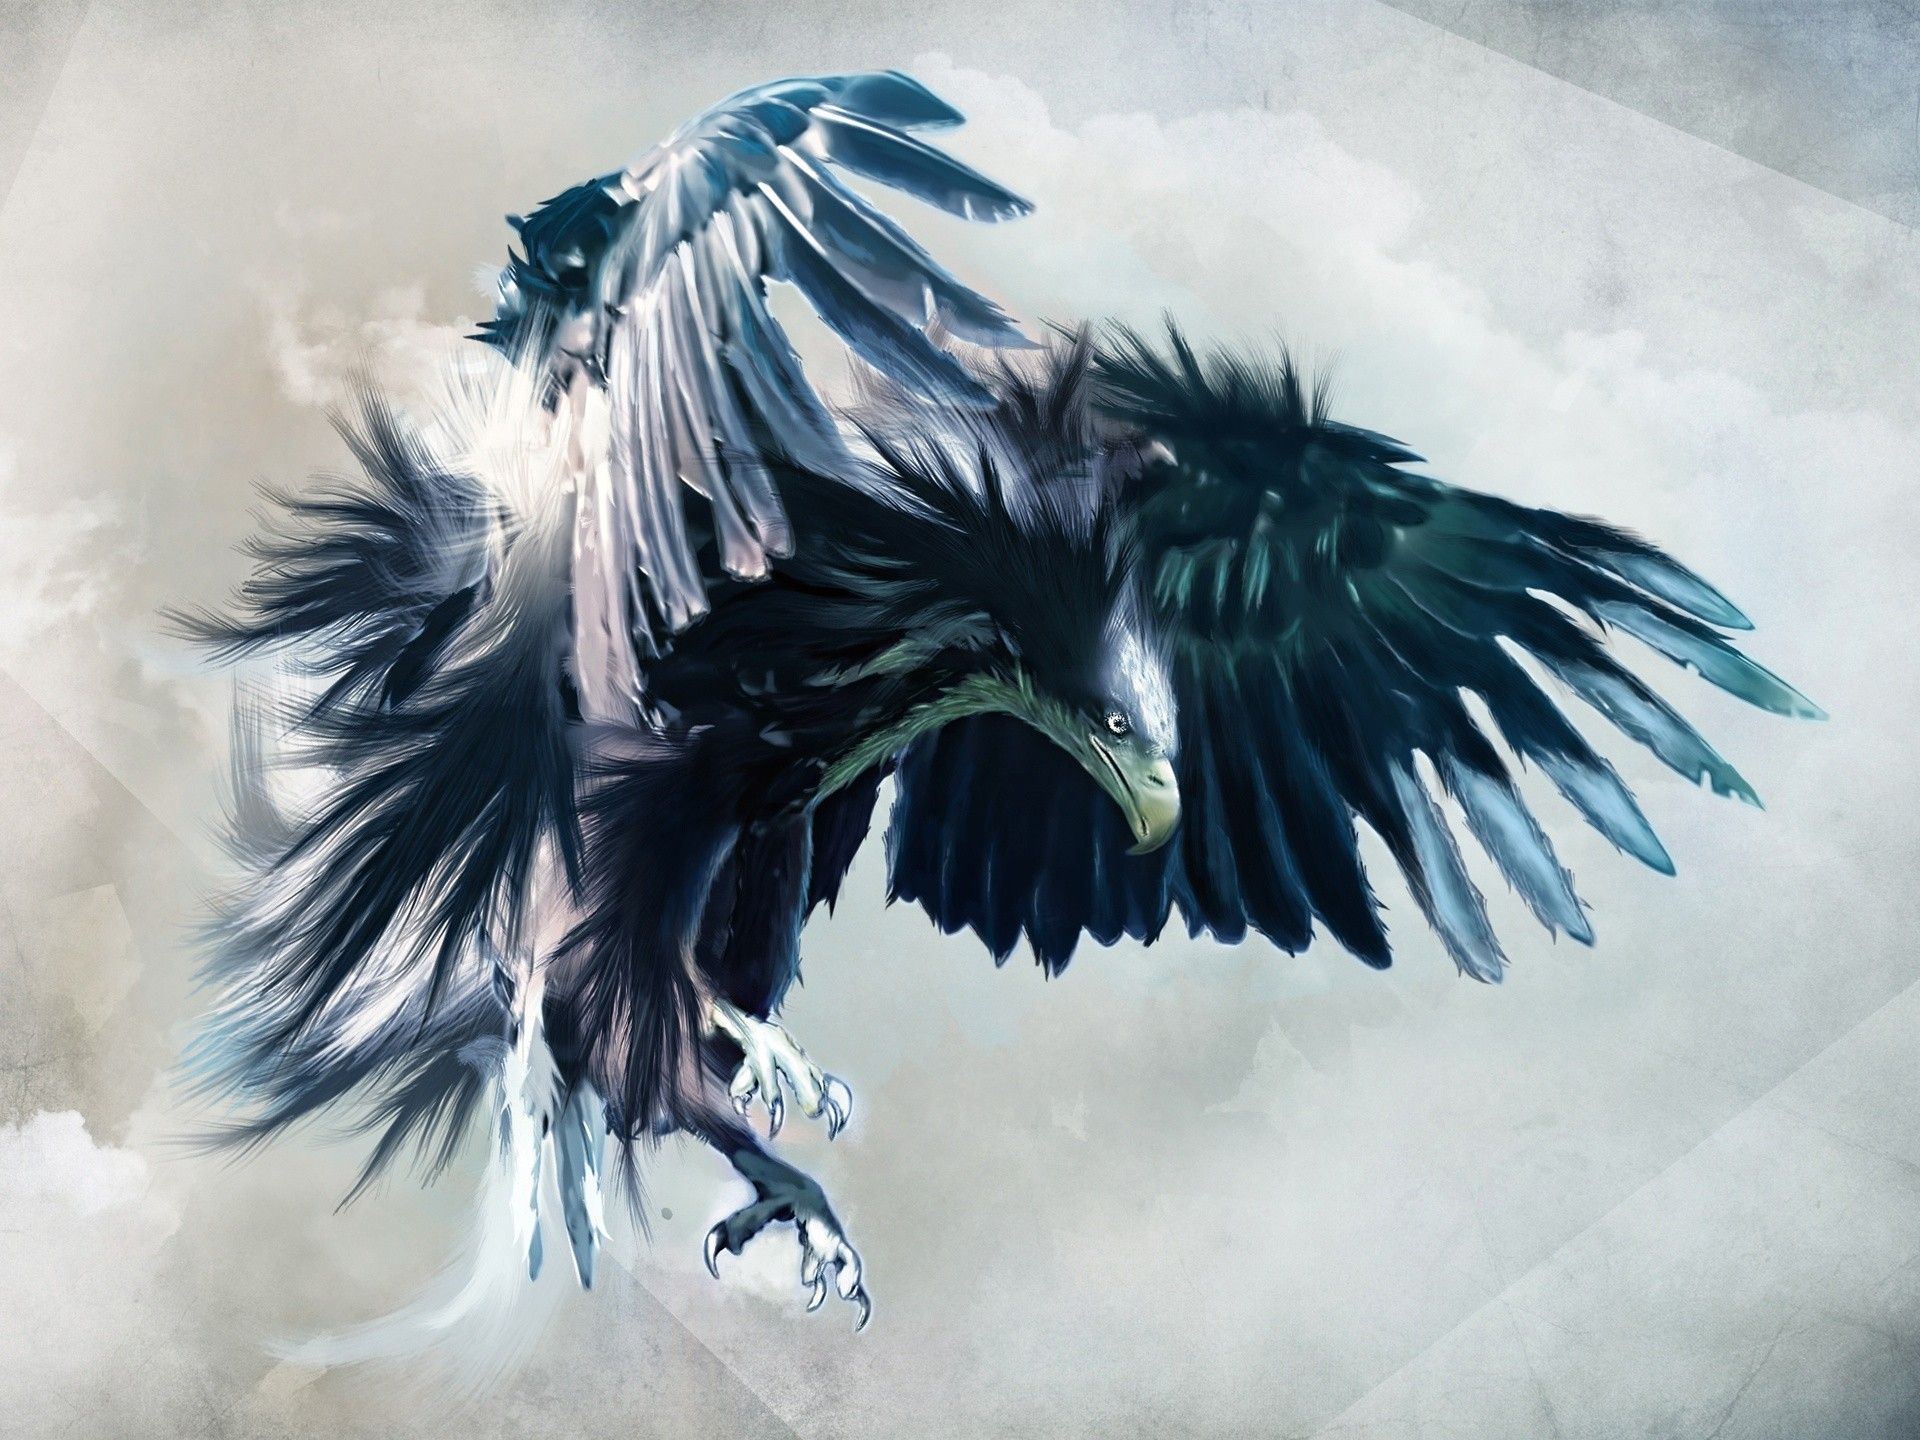 Abstract Birds Eagles Animated Drawings Wallpaper